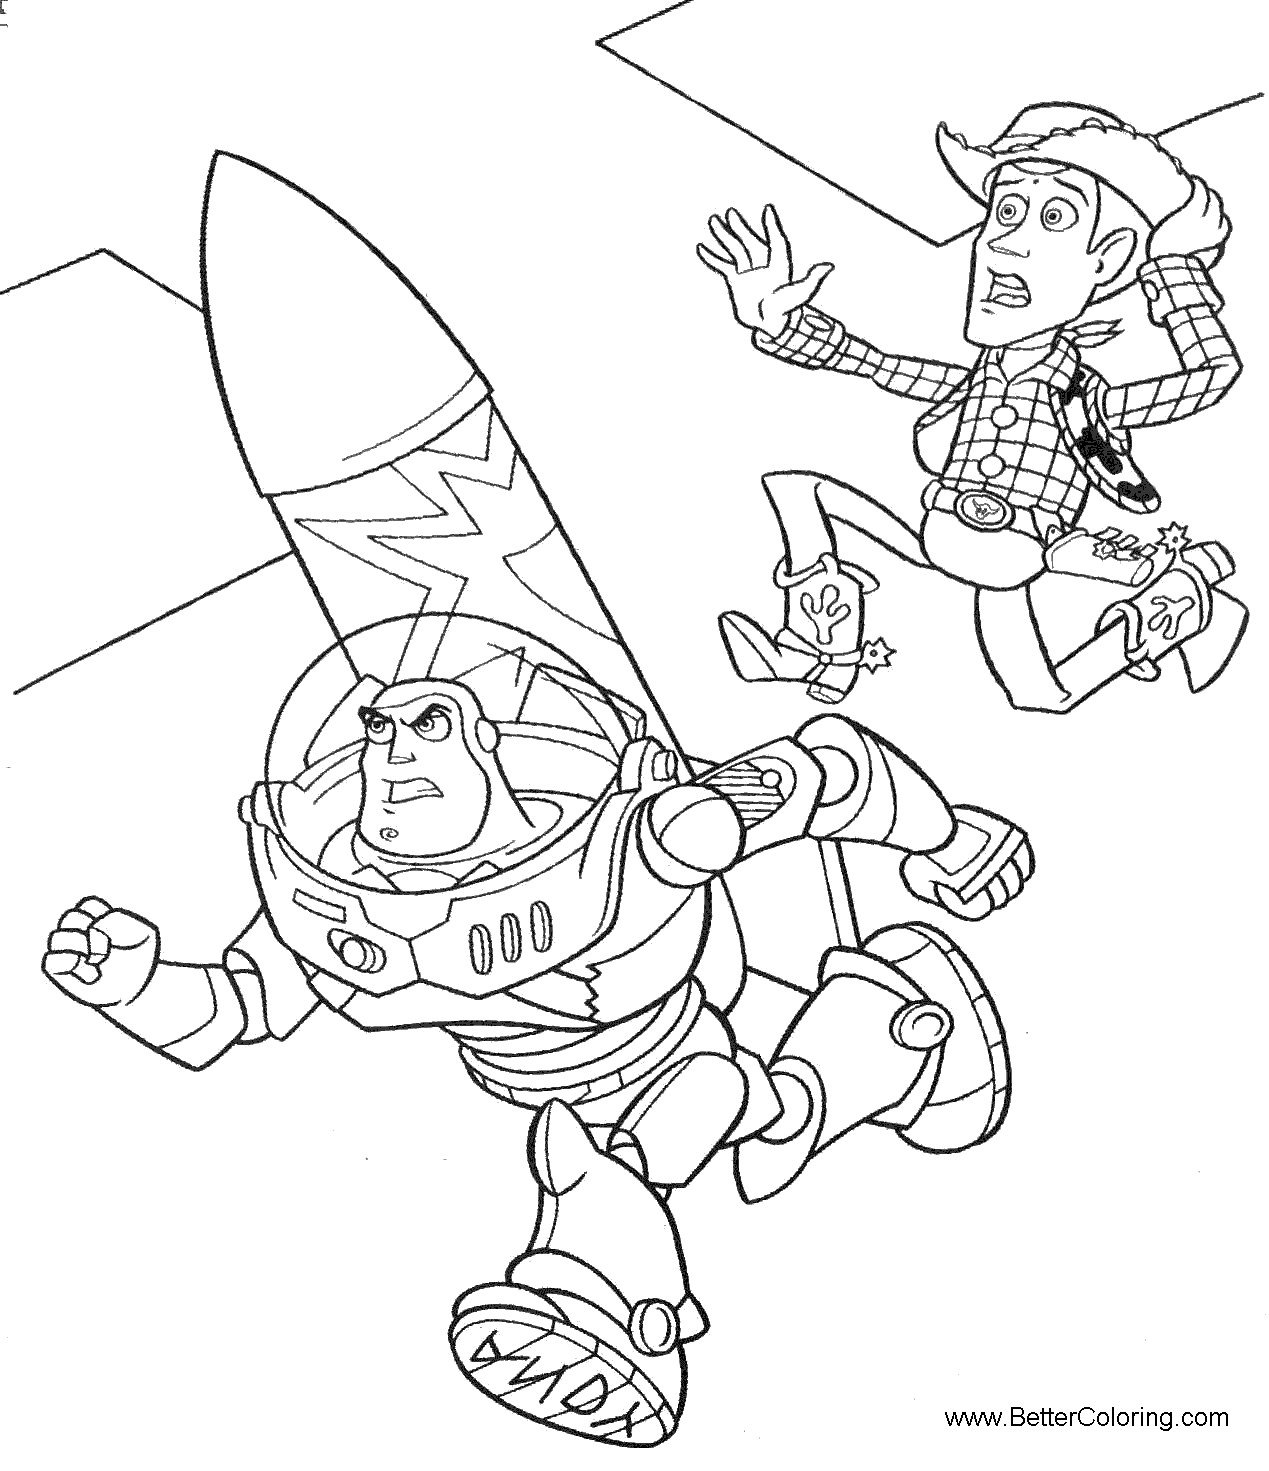 Buzz Lightyear Coloring Pages Running Free Printable Coloring Pages